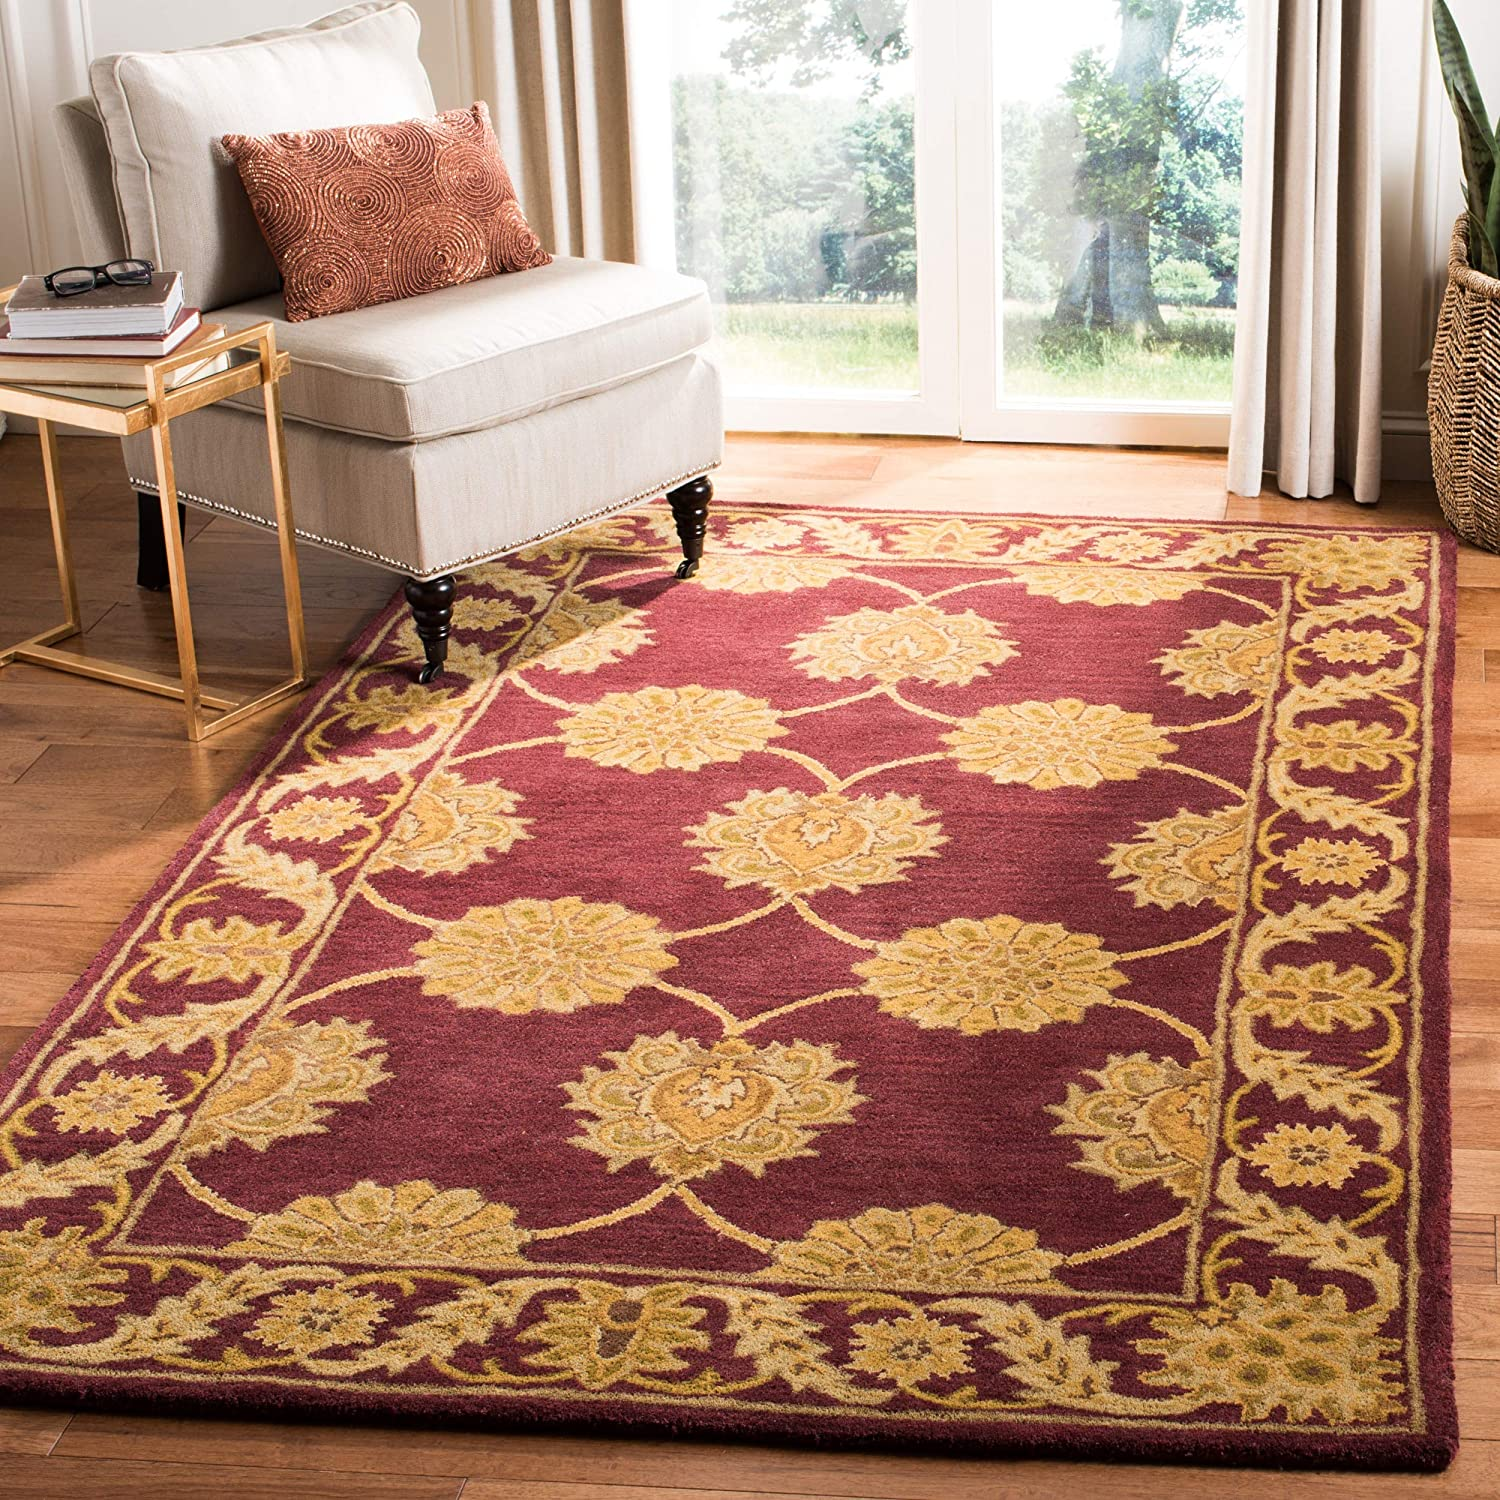 Safavieh Heritage Collection HG314B Handcrafted Traditional Oriental Maroon Wool Area Rug (3' x 5')